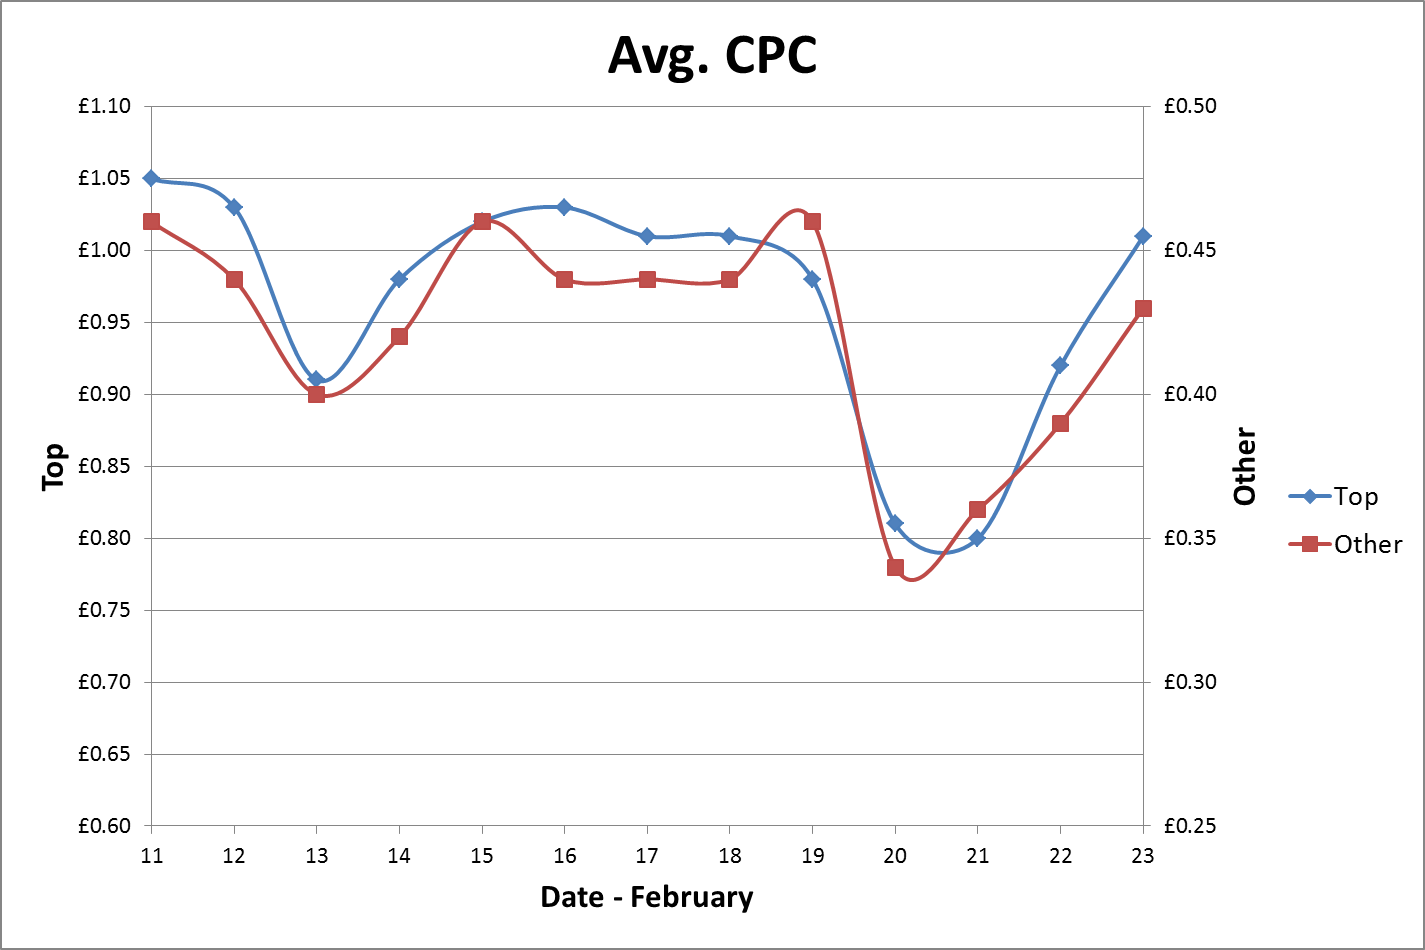 Graph showing average CPC over two weeks.